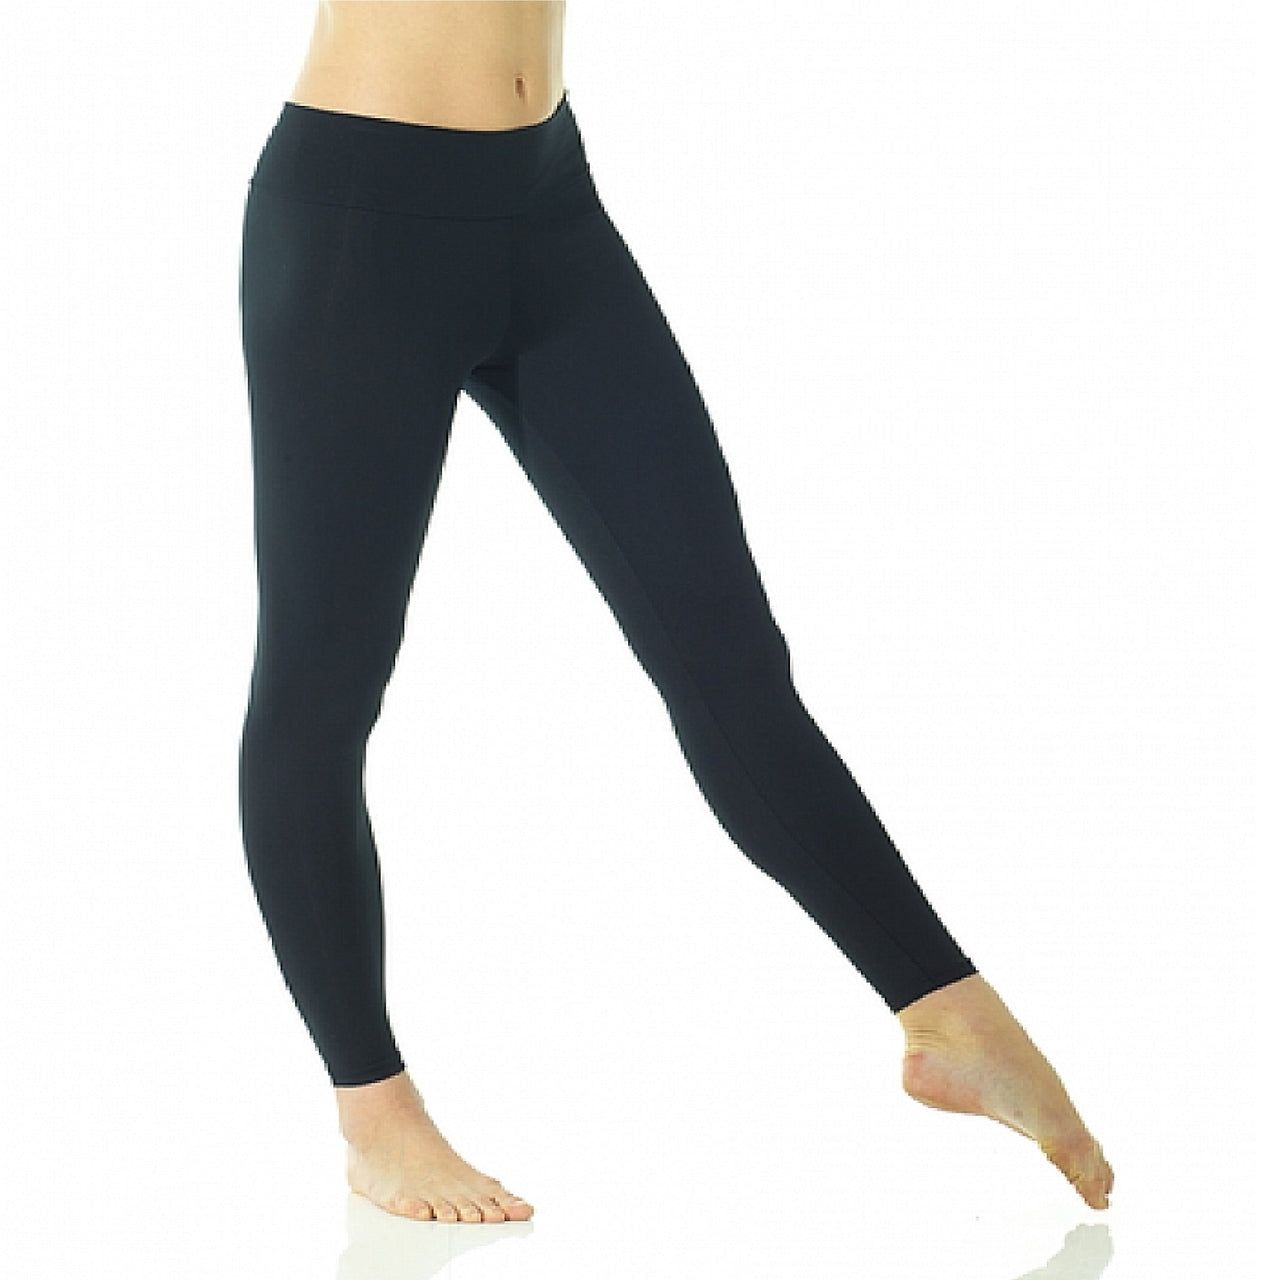 Mondor 3529 - Matrix Wide Band Legging Adult